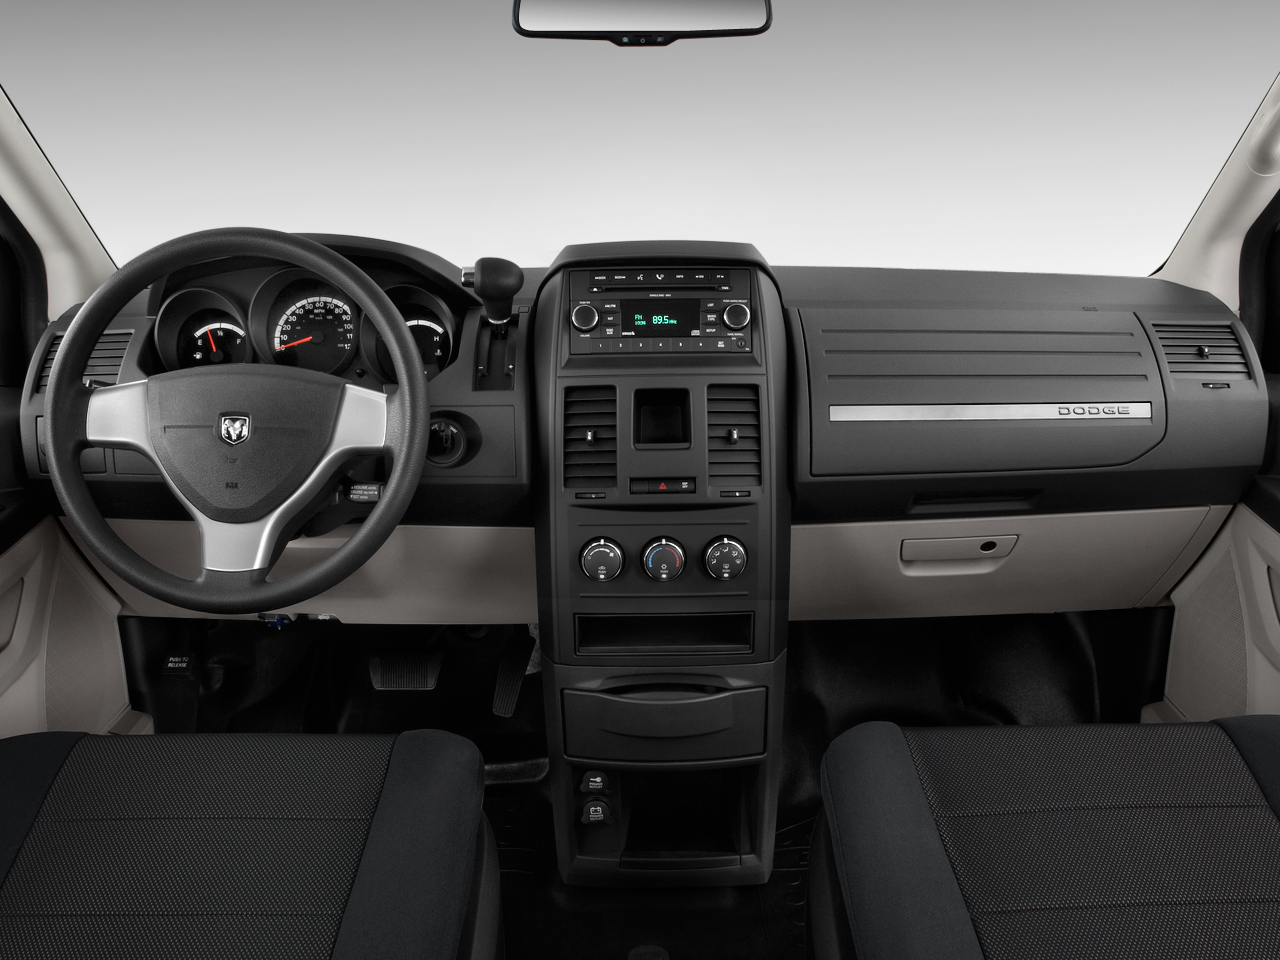 2009 Dodge Grand Caravan Sxt 3 8 Dodge Minivan Review